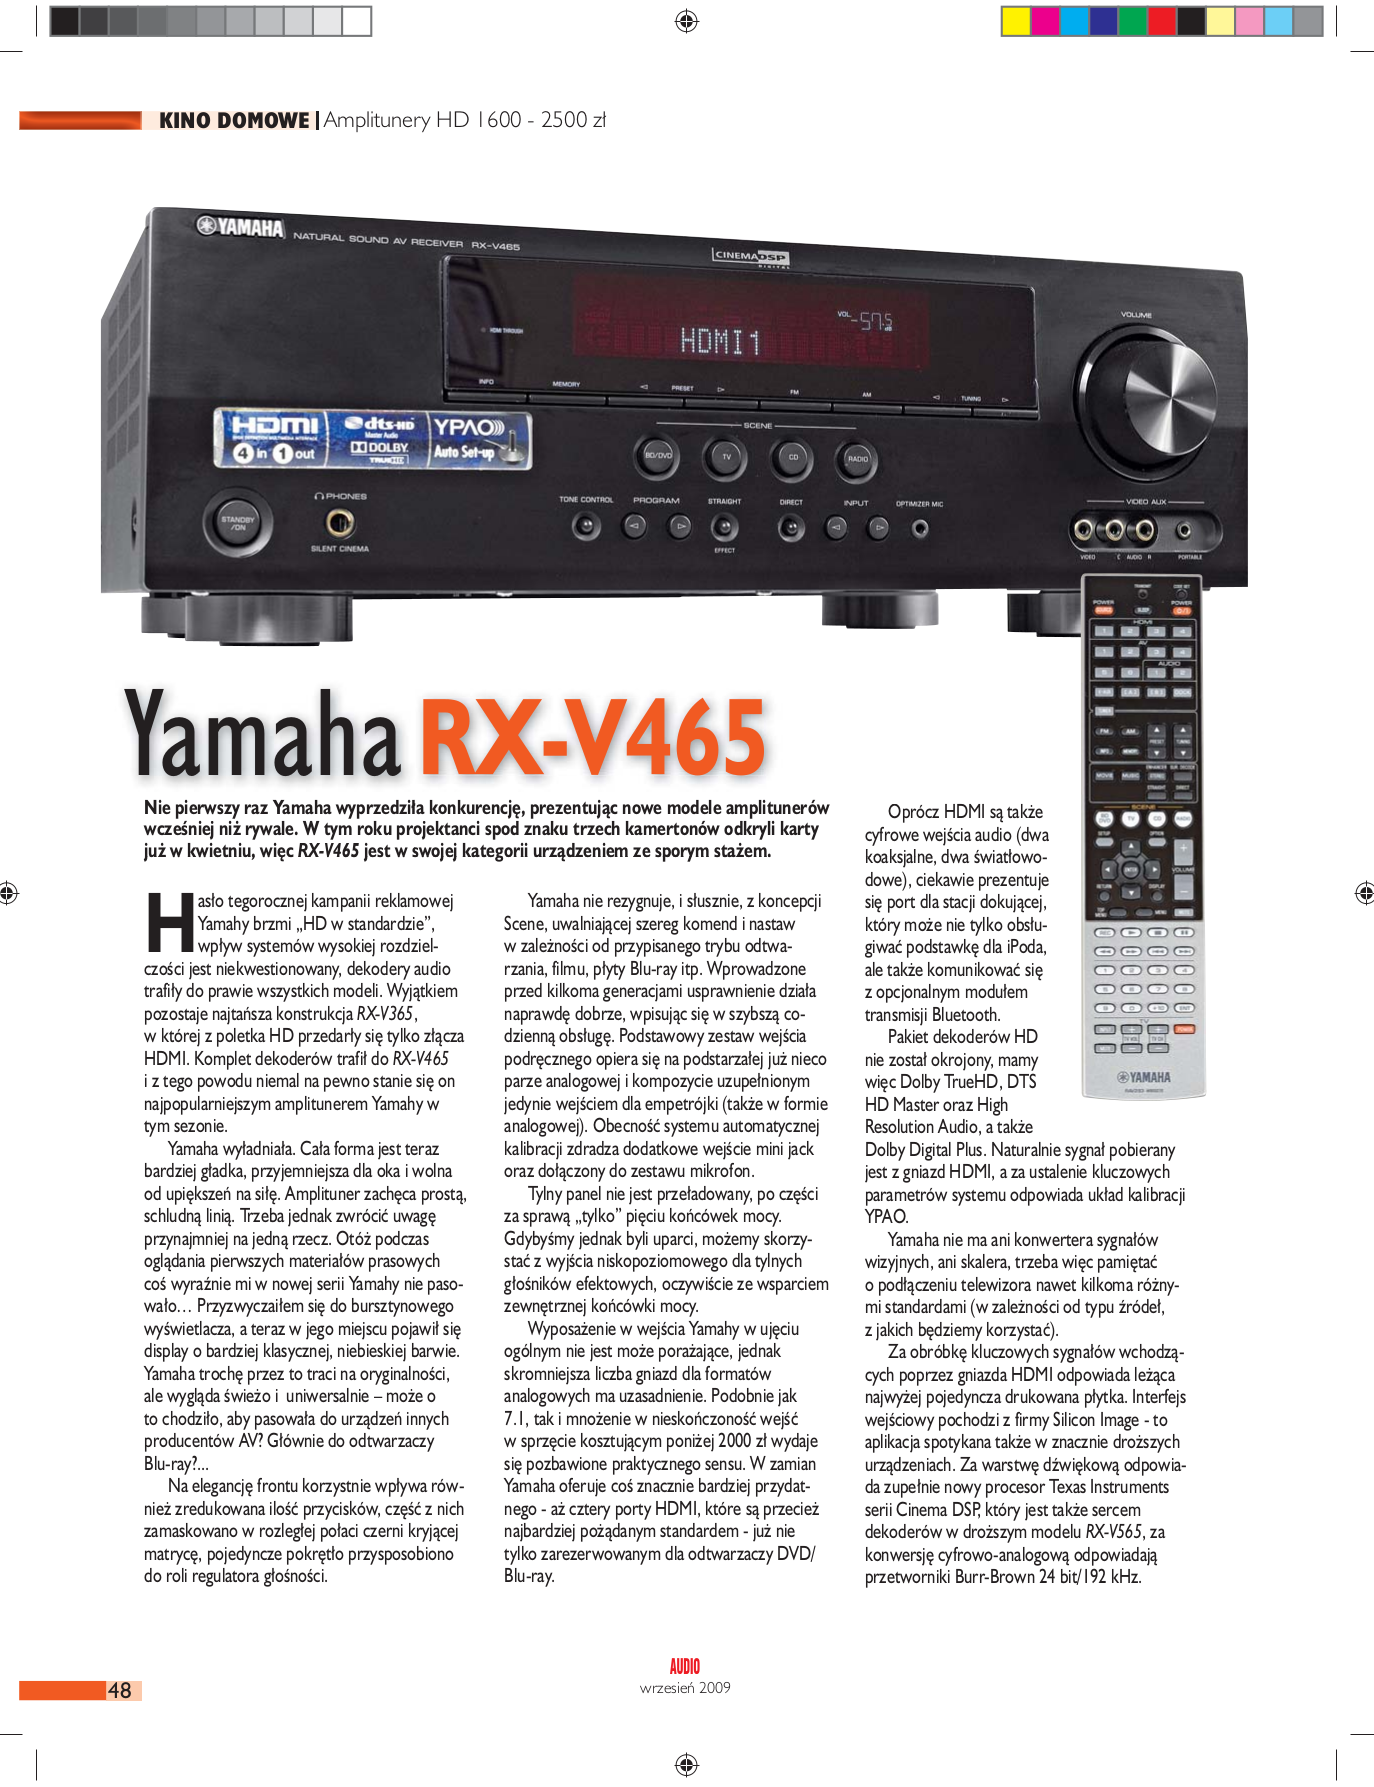 download free pdf for yamaha rx v465 receiver manual rh umlib com yamaha rx-v465 notice yamaha rx-v465 notice